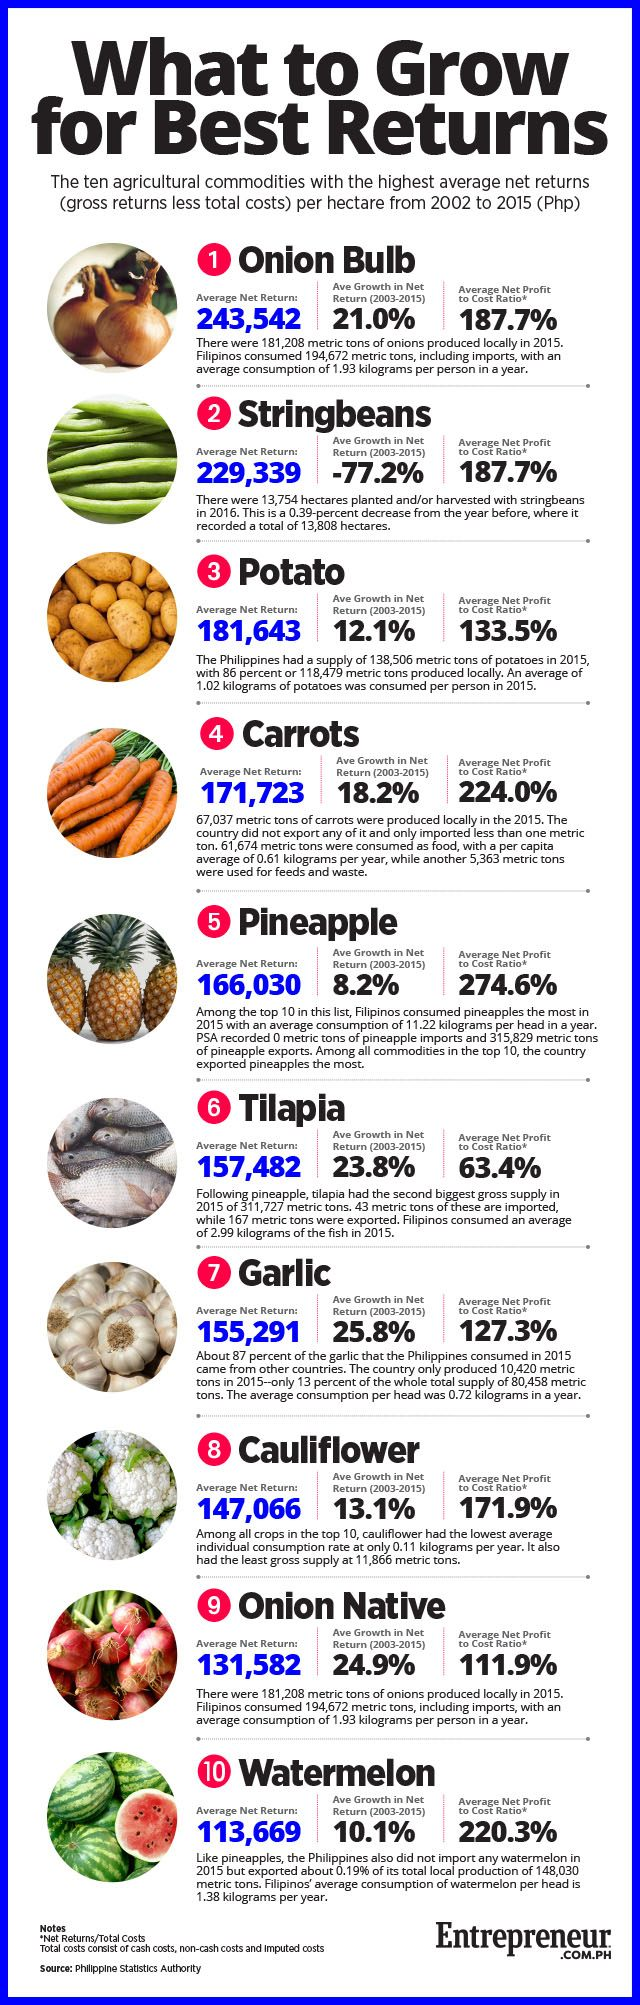 What are the Most Profitable Farm Products to Grow in the Philippines?